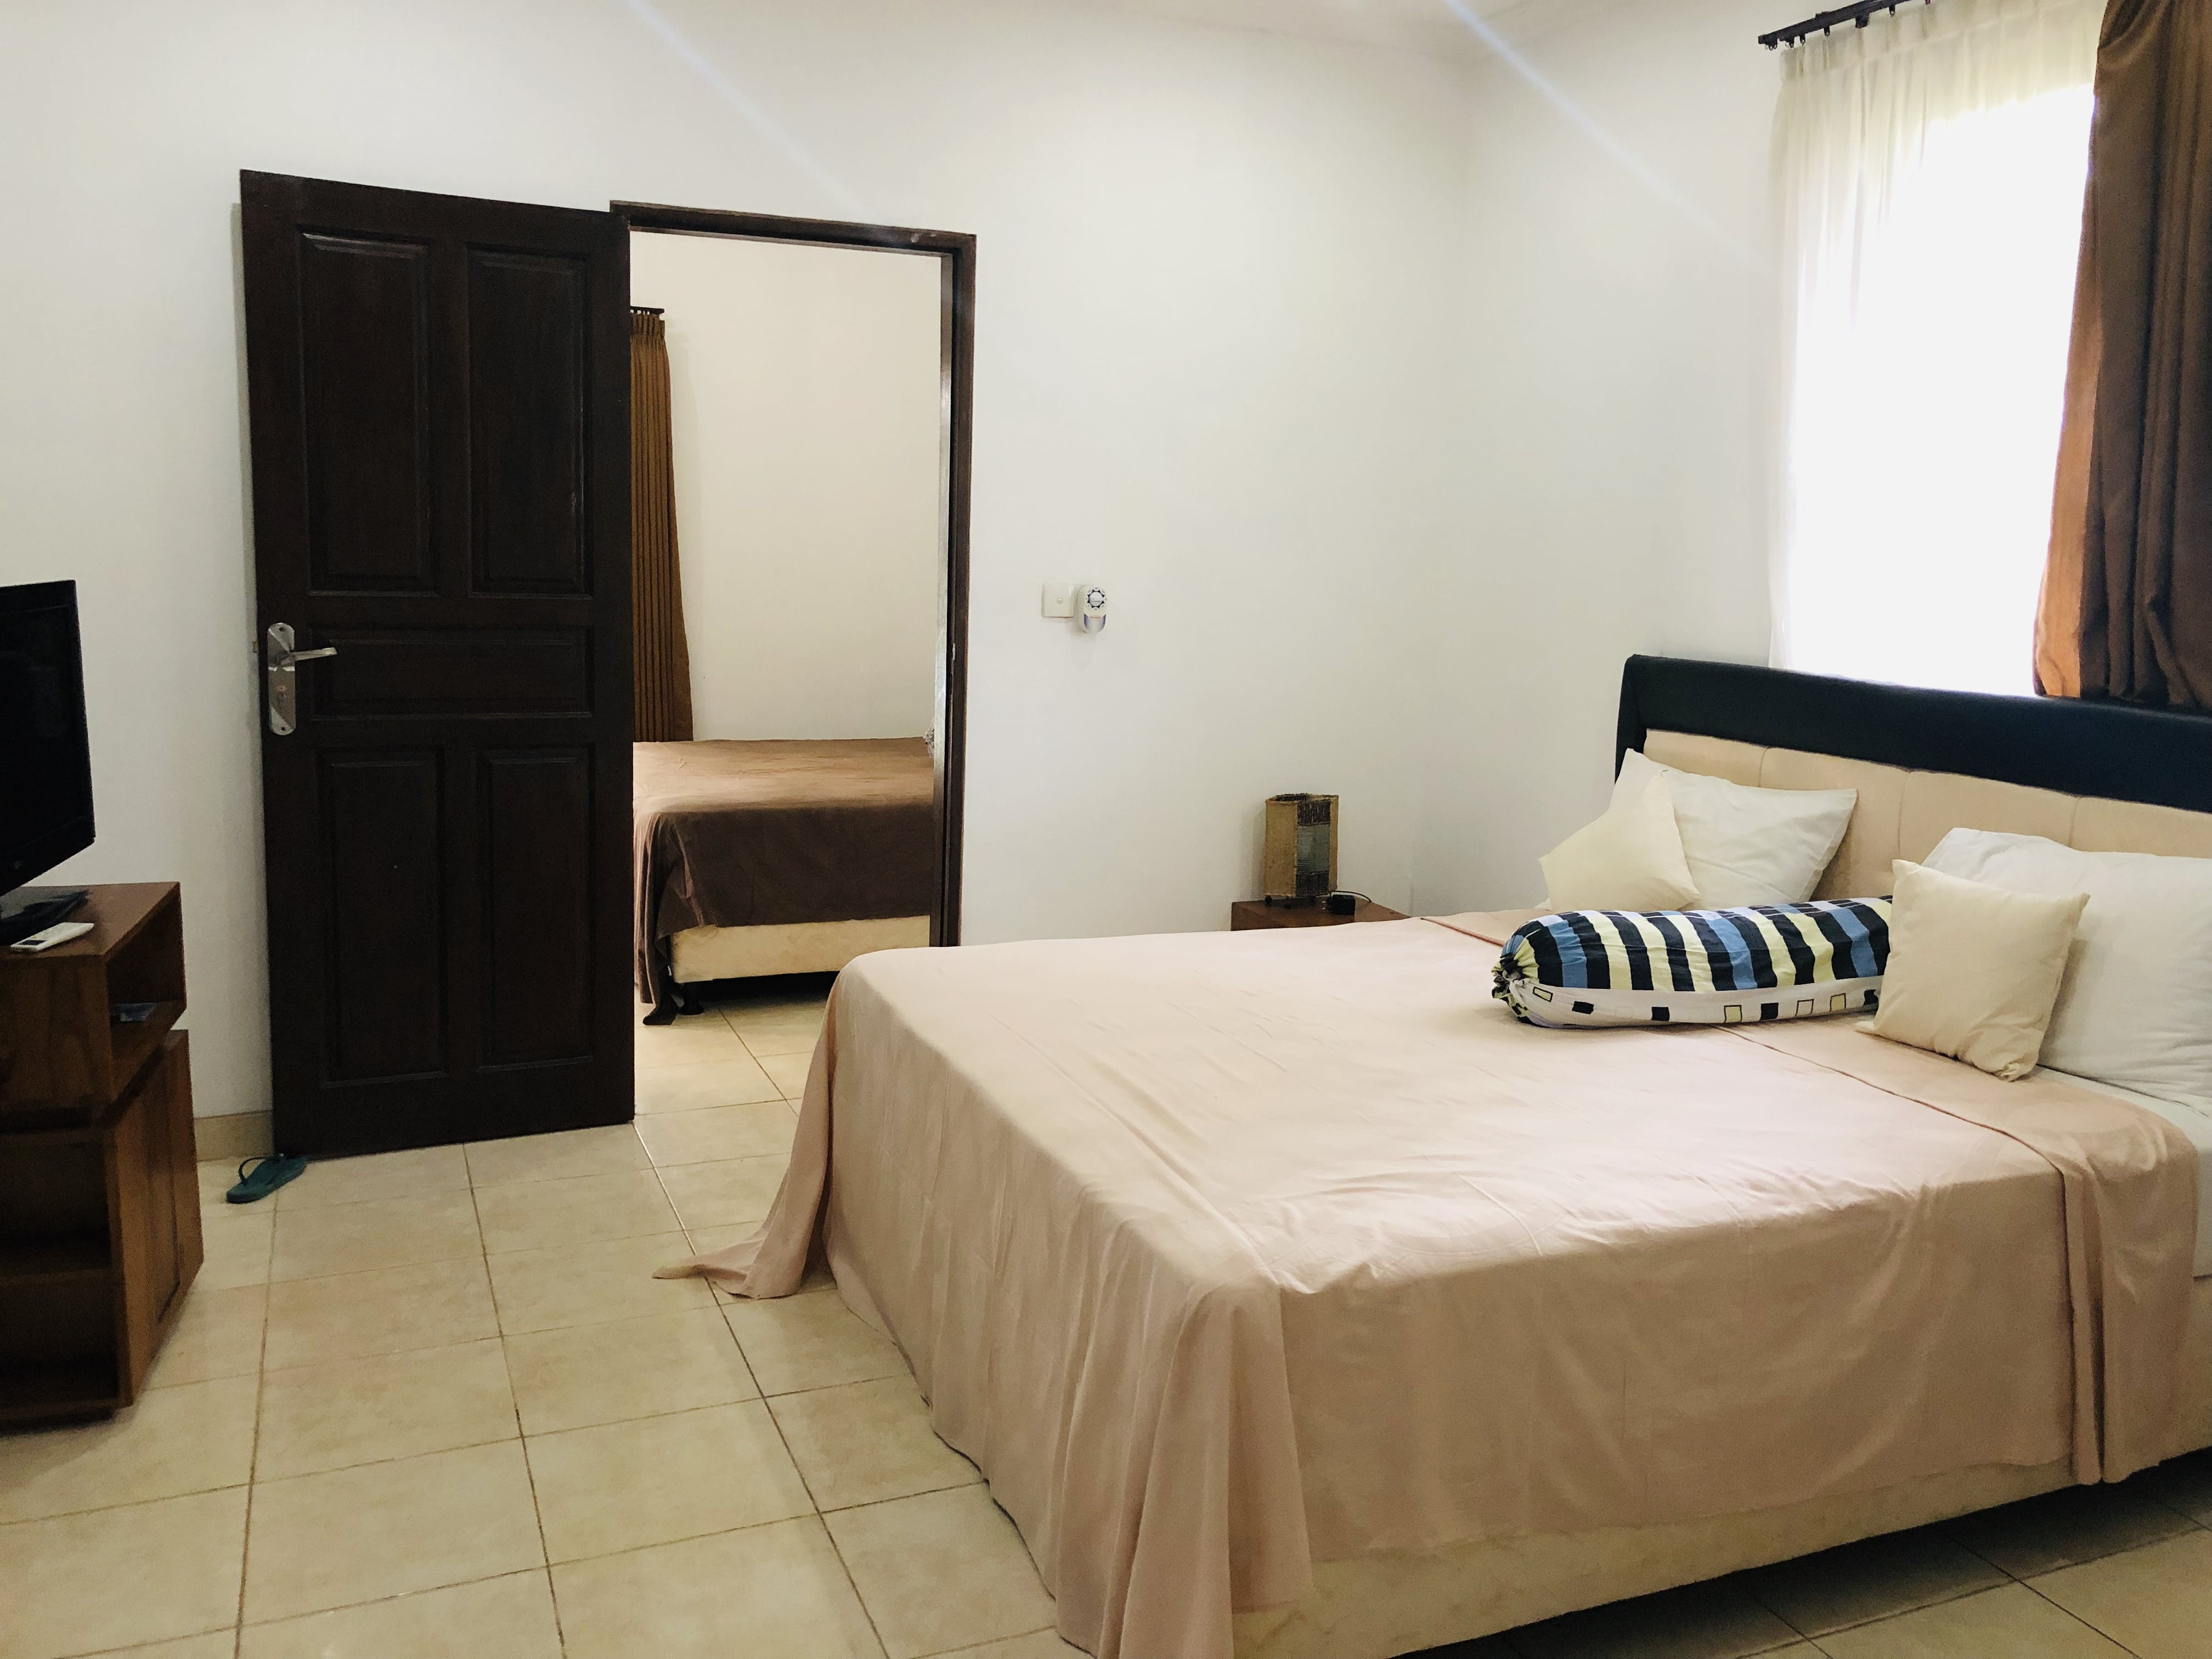 Beach House Room 3 – 2 Bedroom / 1 Bathroom | Lembongan ...